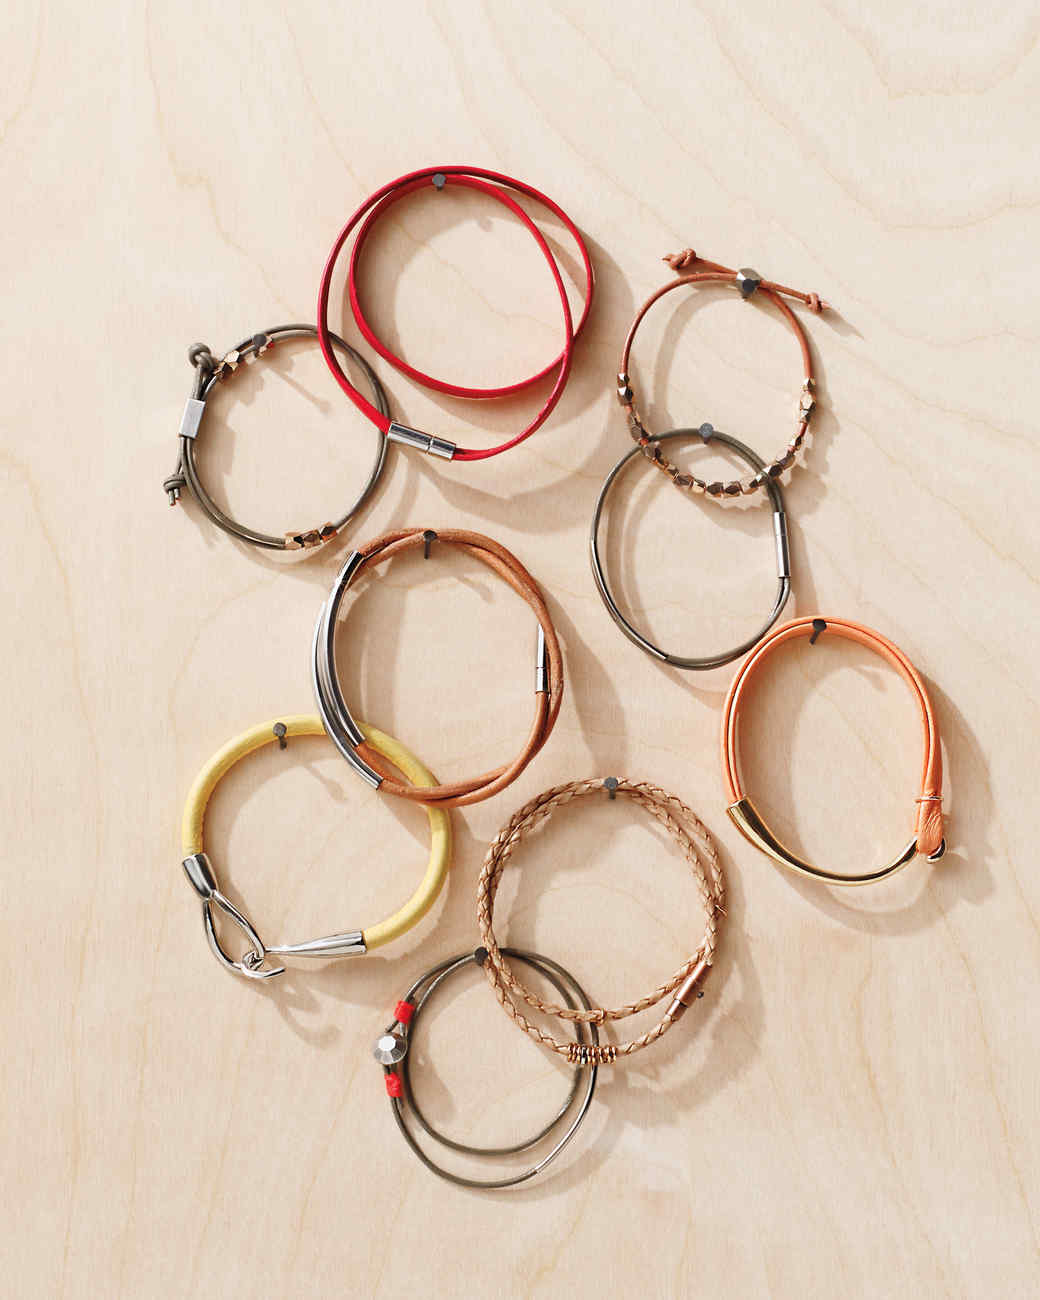 Hide & Chic Bracelets: How To